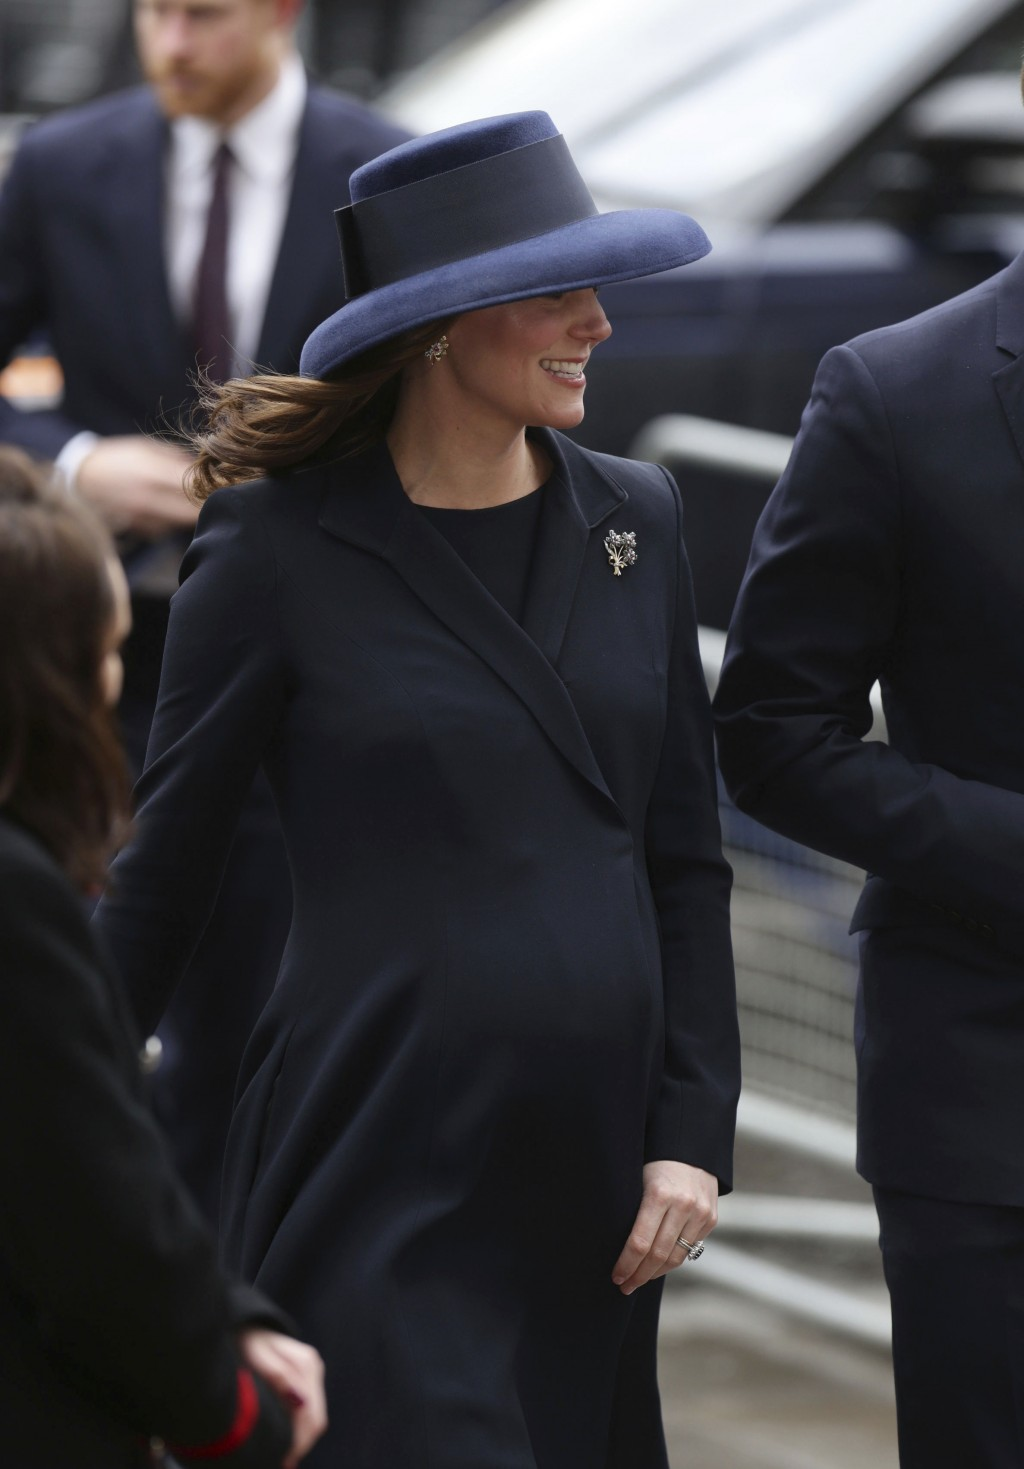 Britain's Princess Kate The Duchess of Cambridge arrives with other family members for the Commonwealth Service at Westminster Abbey in London, Monday